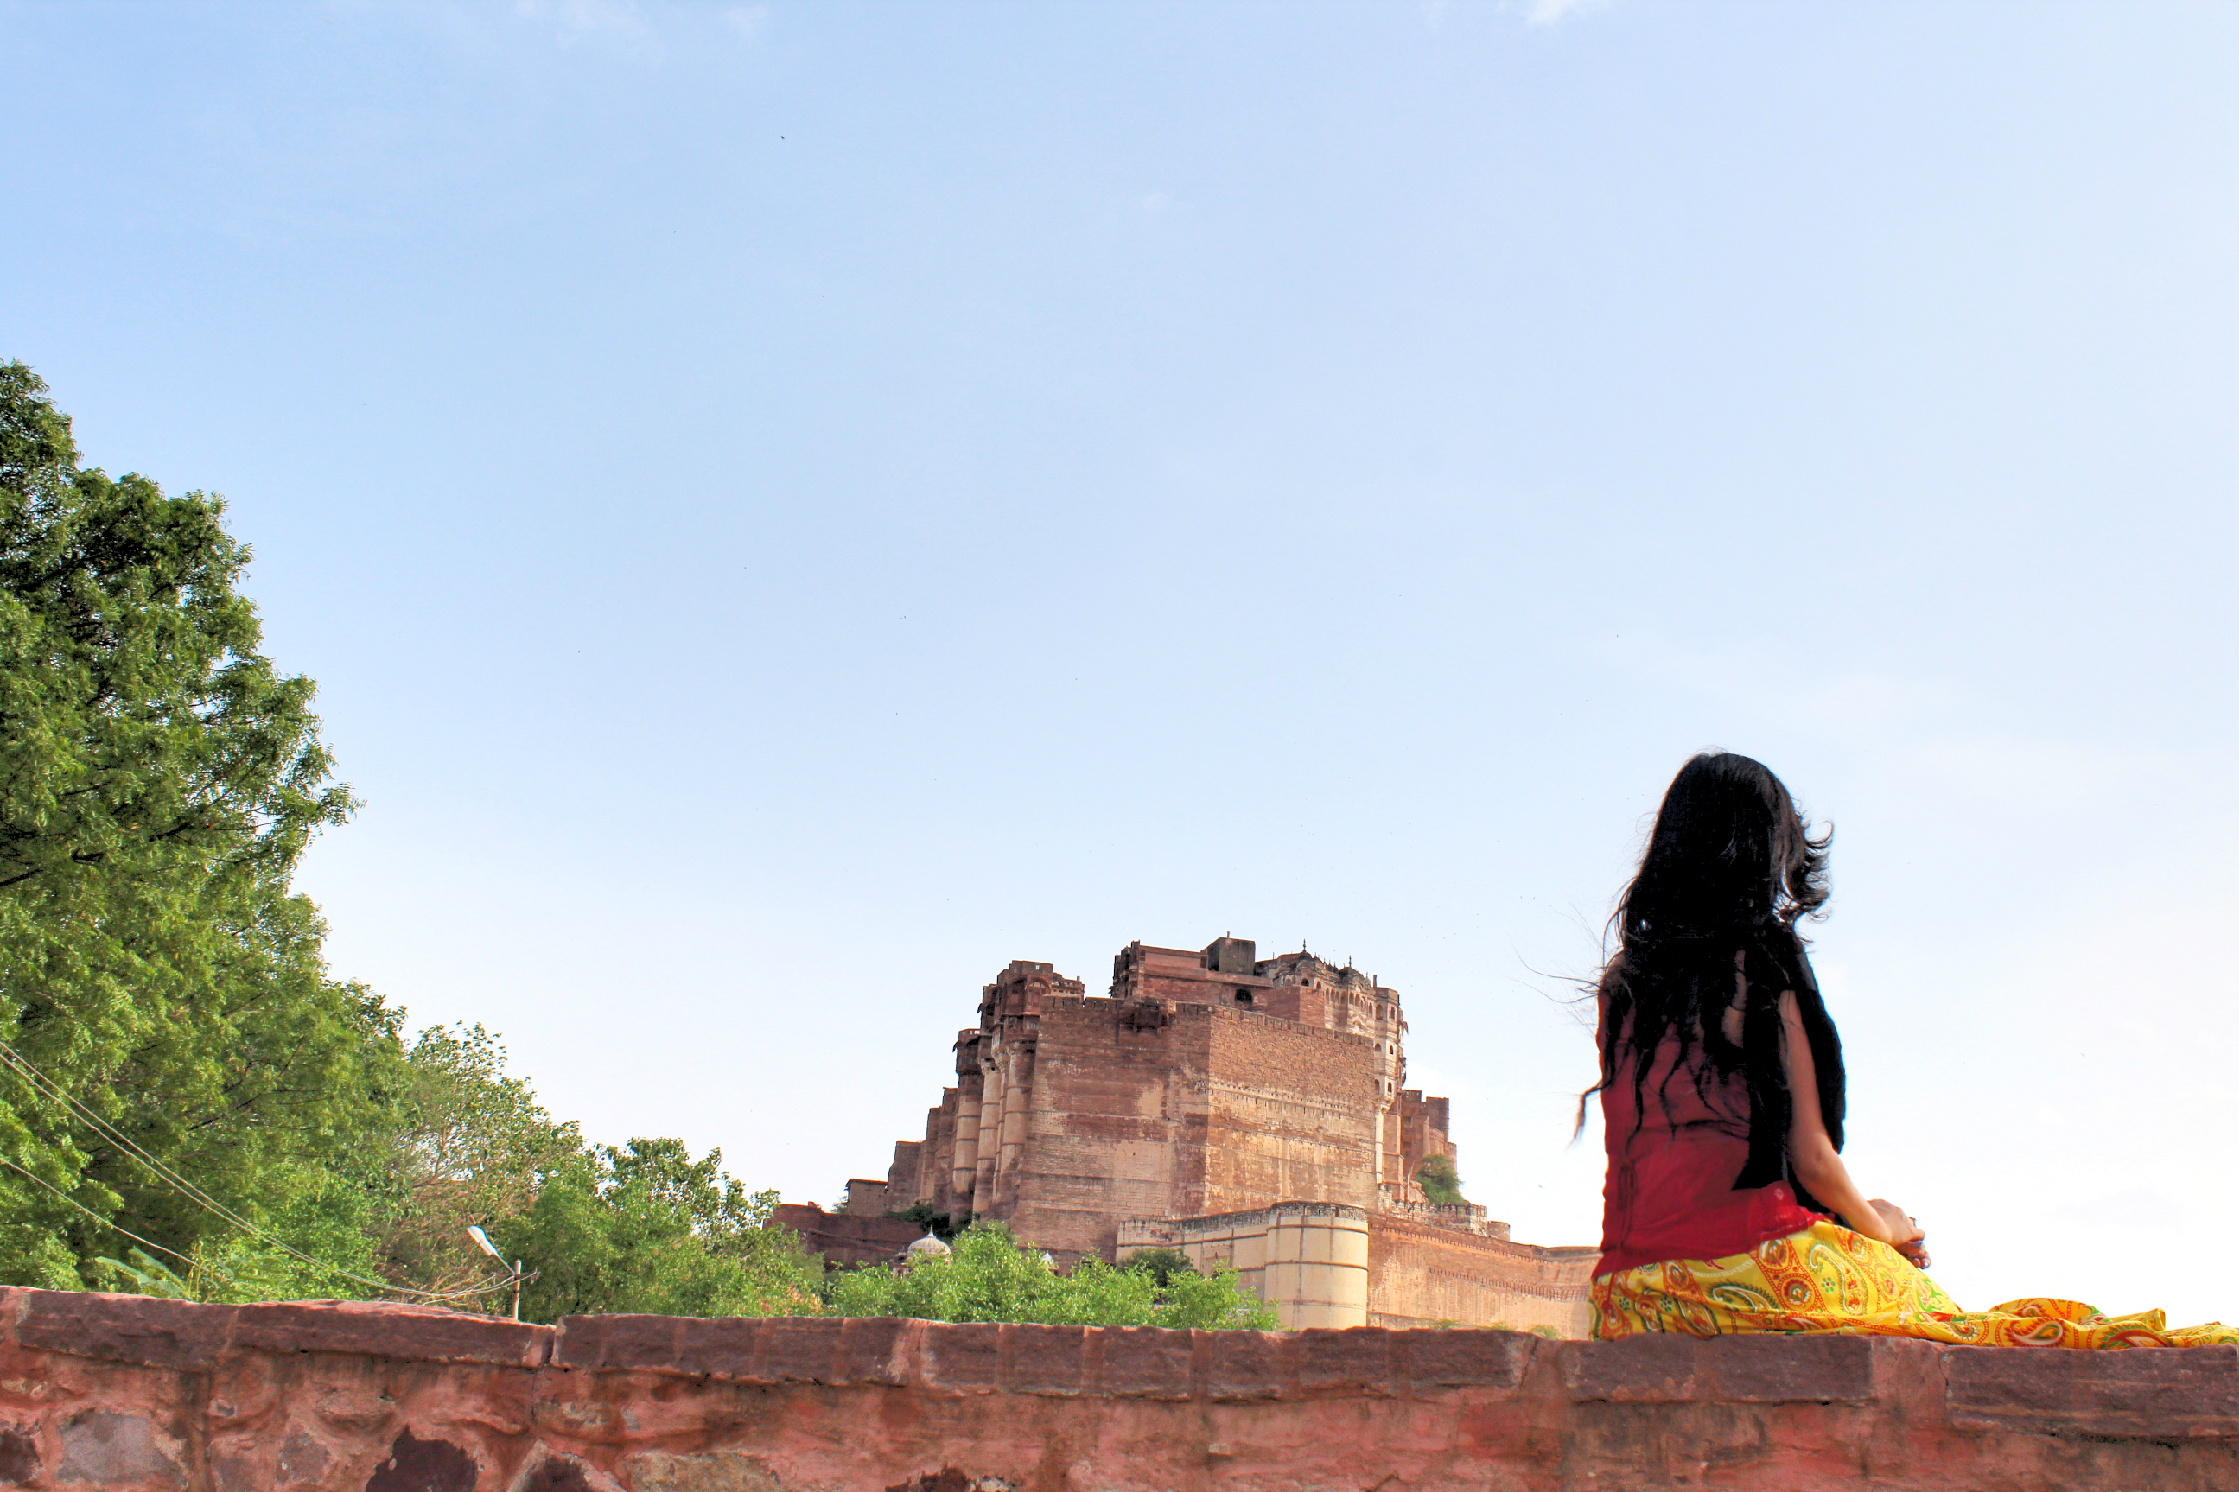 Read Top Things to Do in Jodhpur: Our Favorite Experiences